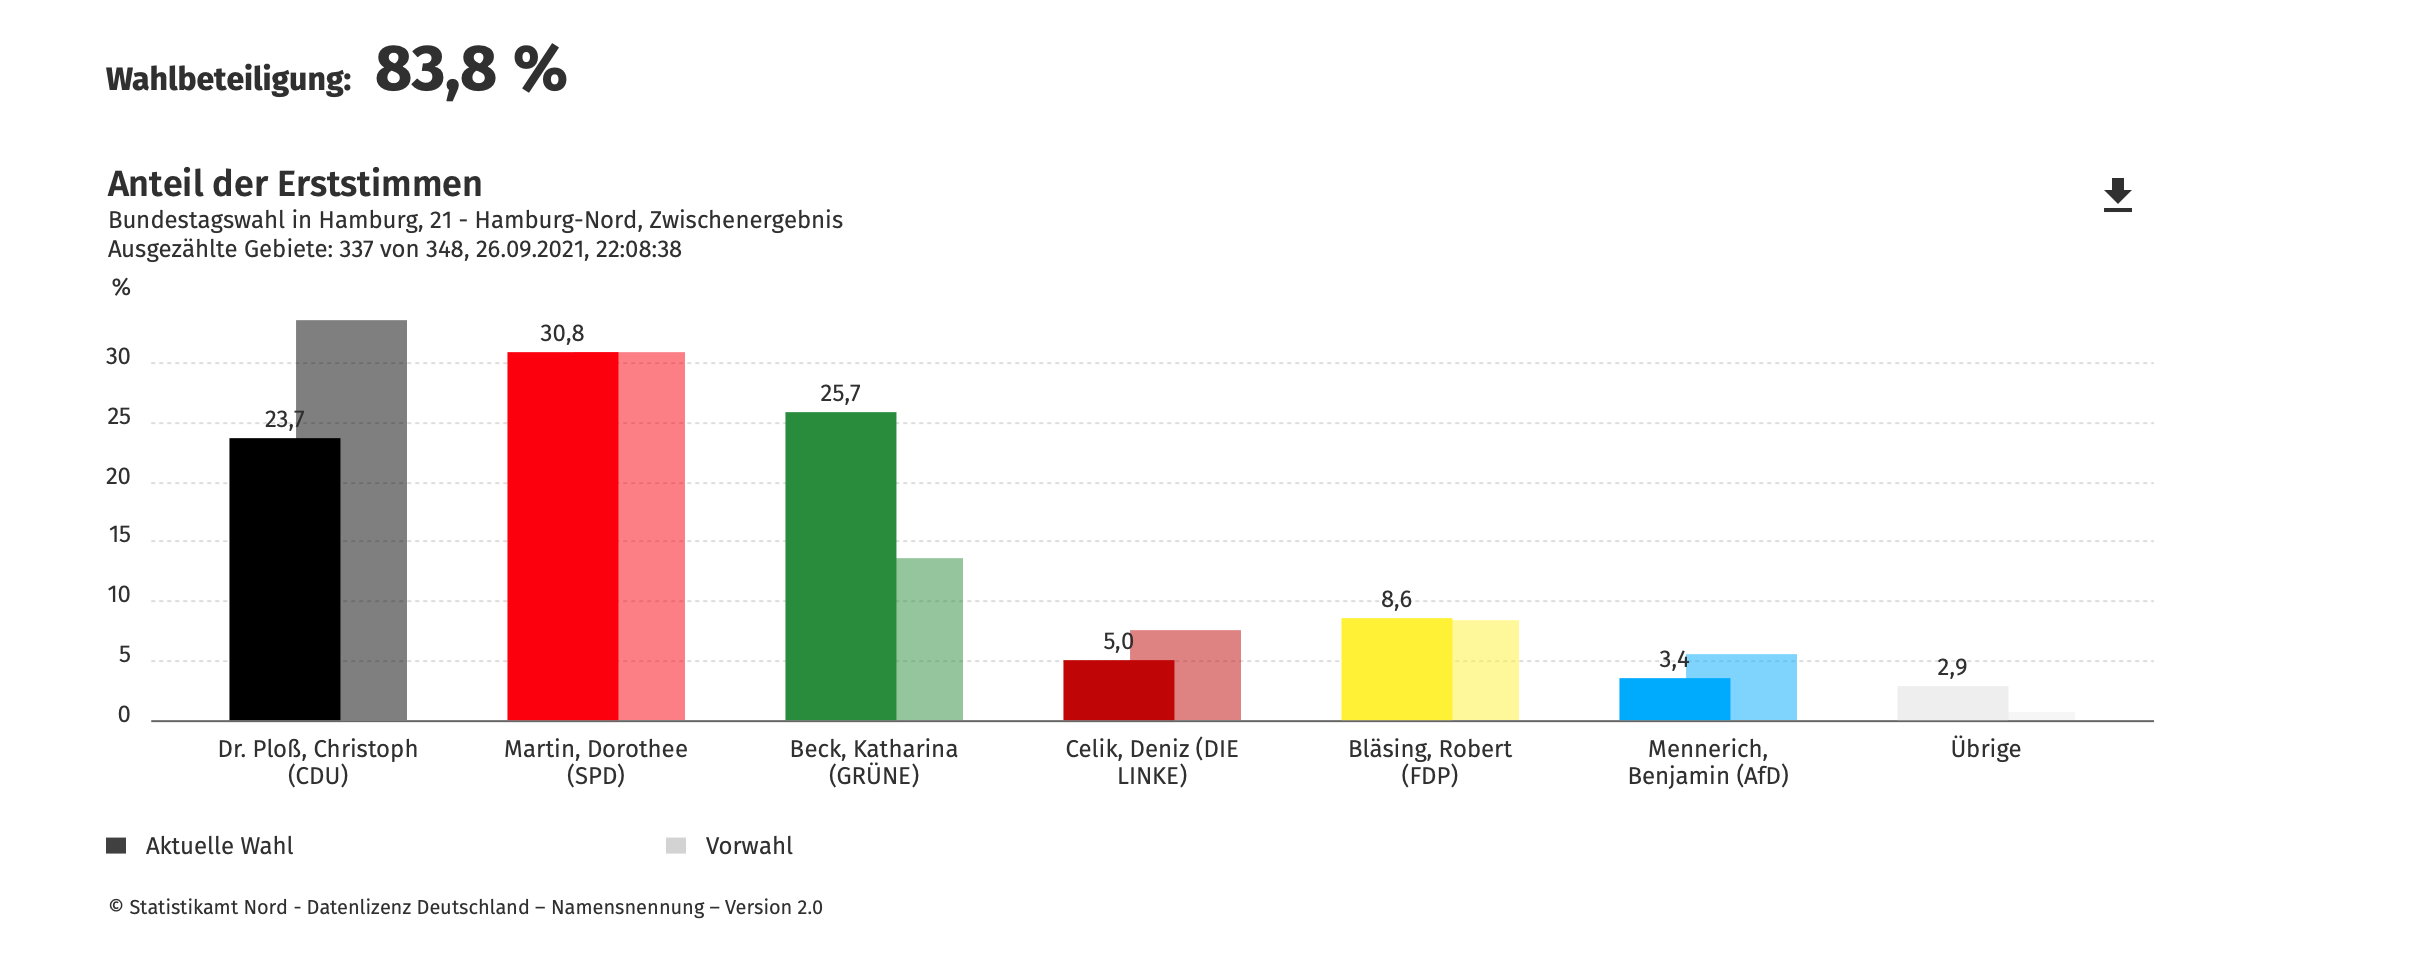 The projection for the first votes in the HamburgNord constituency